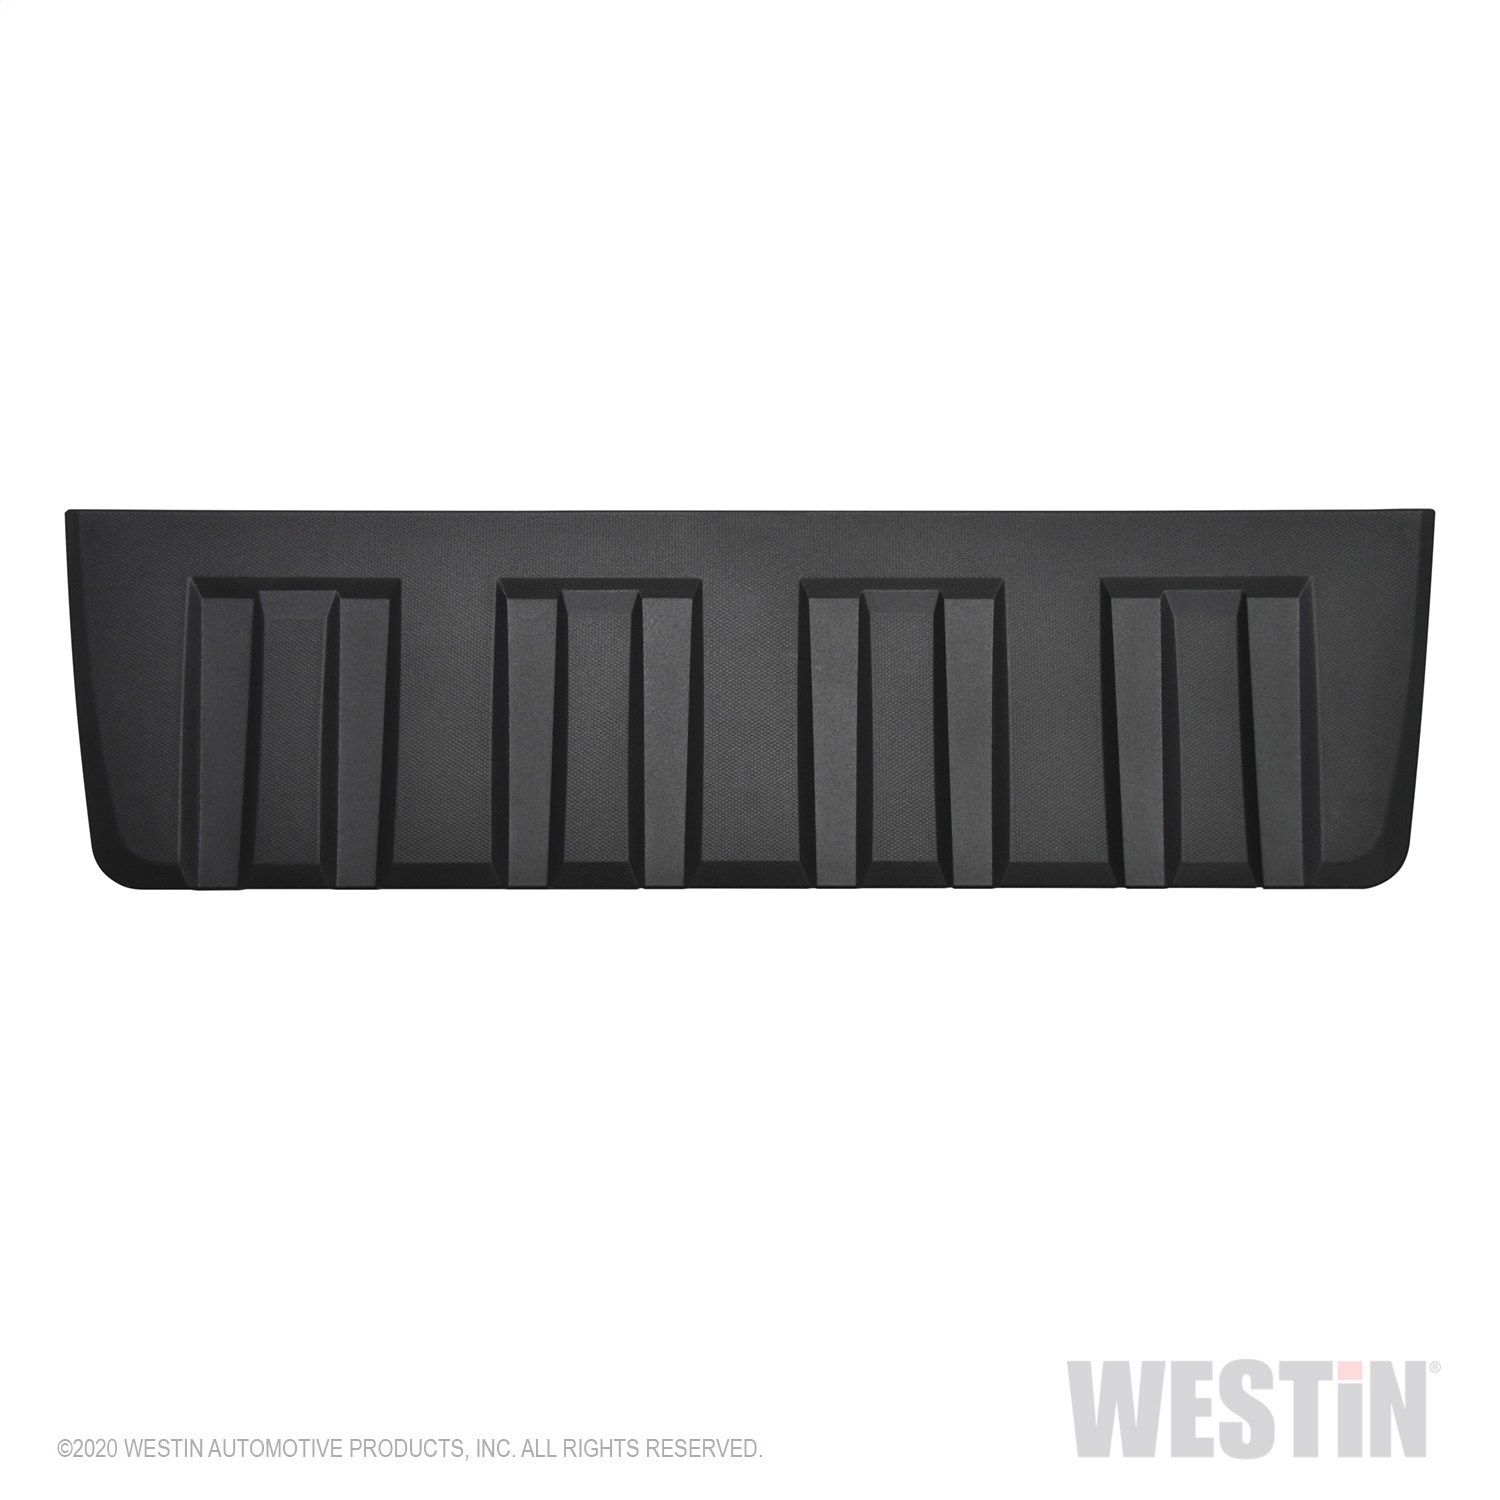 Westin 28-70002 R7 Replacement Step Pad Kit